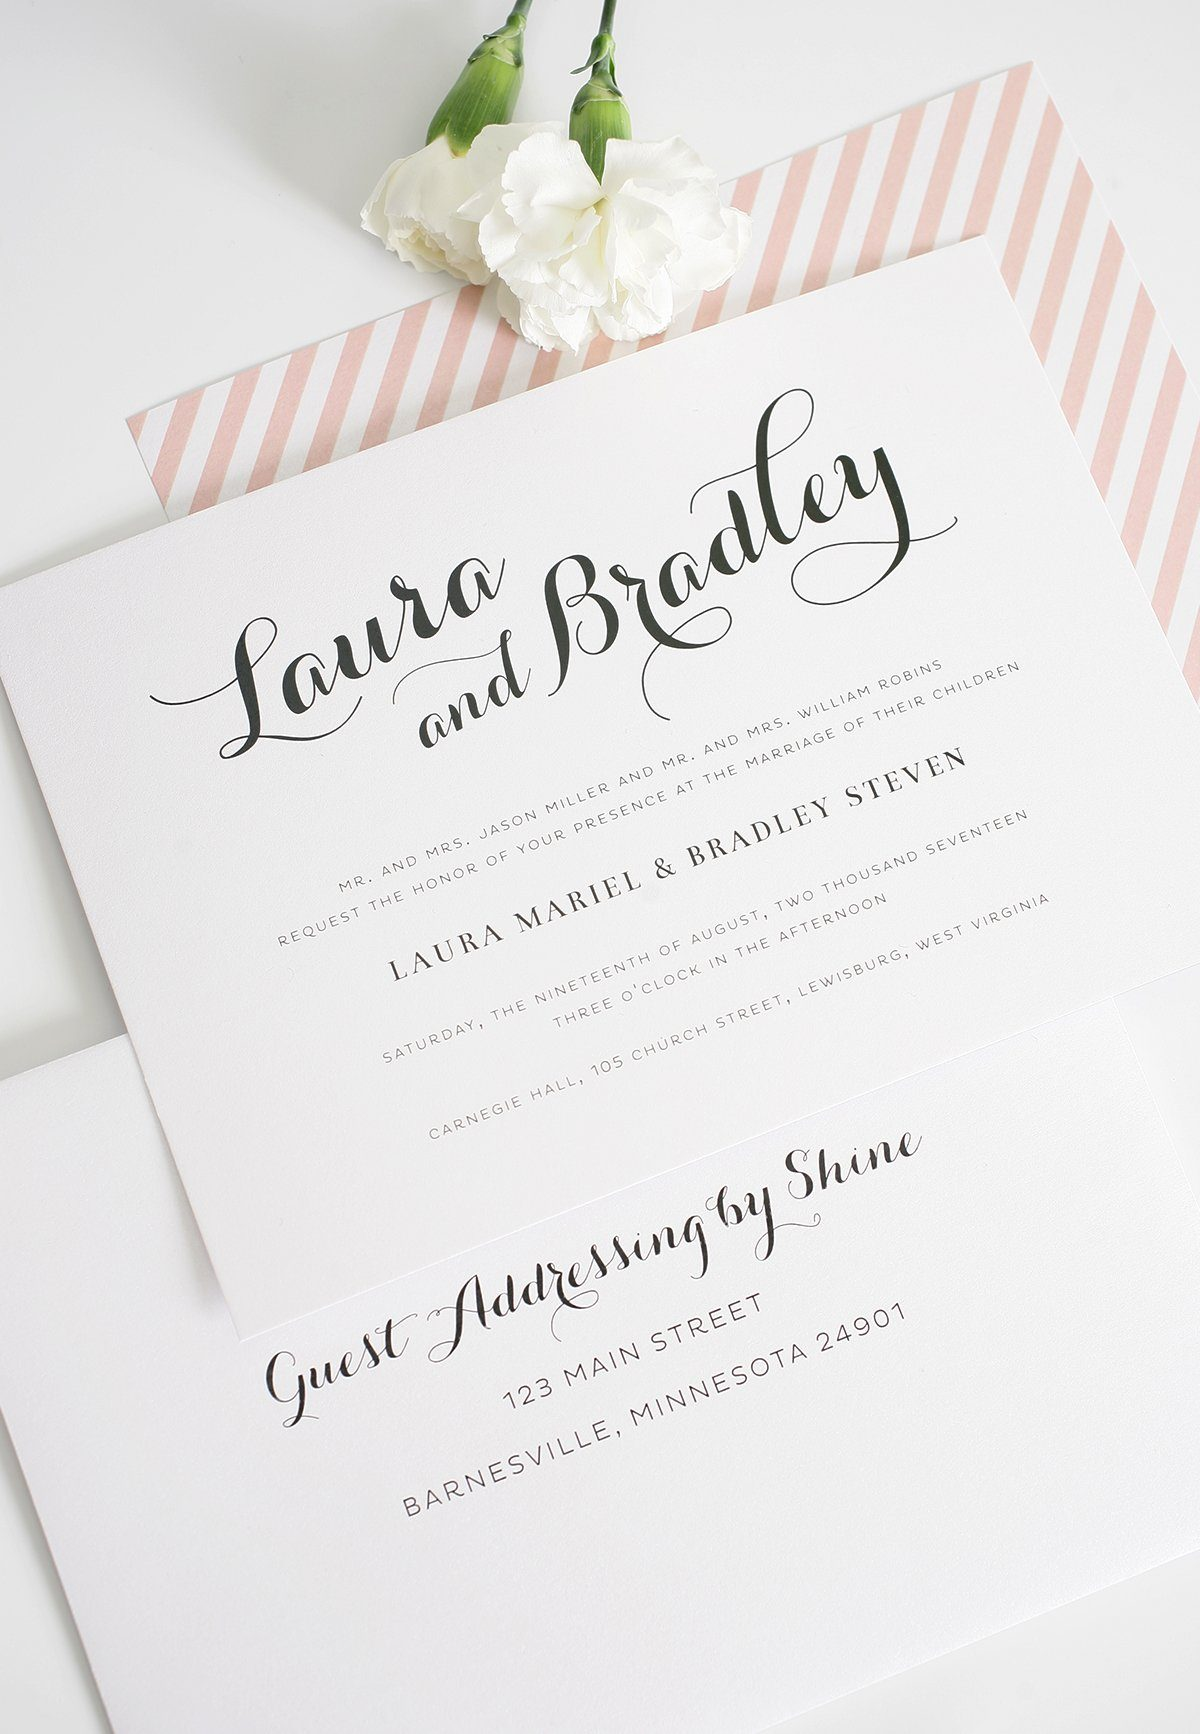 romantic blush wedding invitations u2013 wedding invitations envelope addressing invitation addressing calligraphy computer how - How To Address Wedding Invitations With Guest